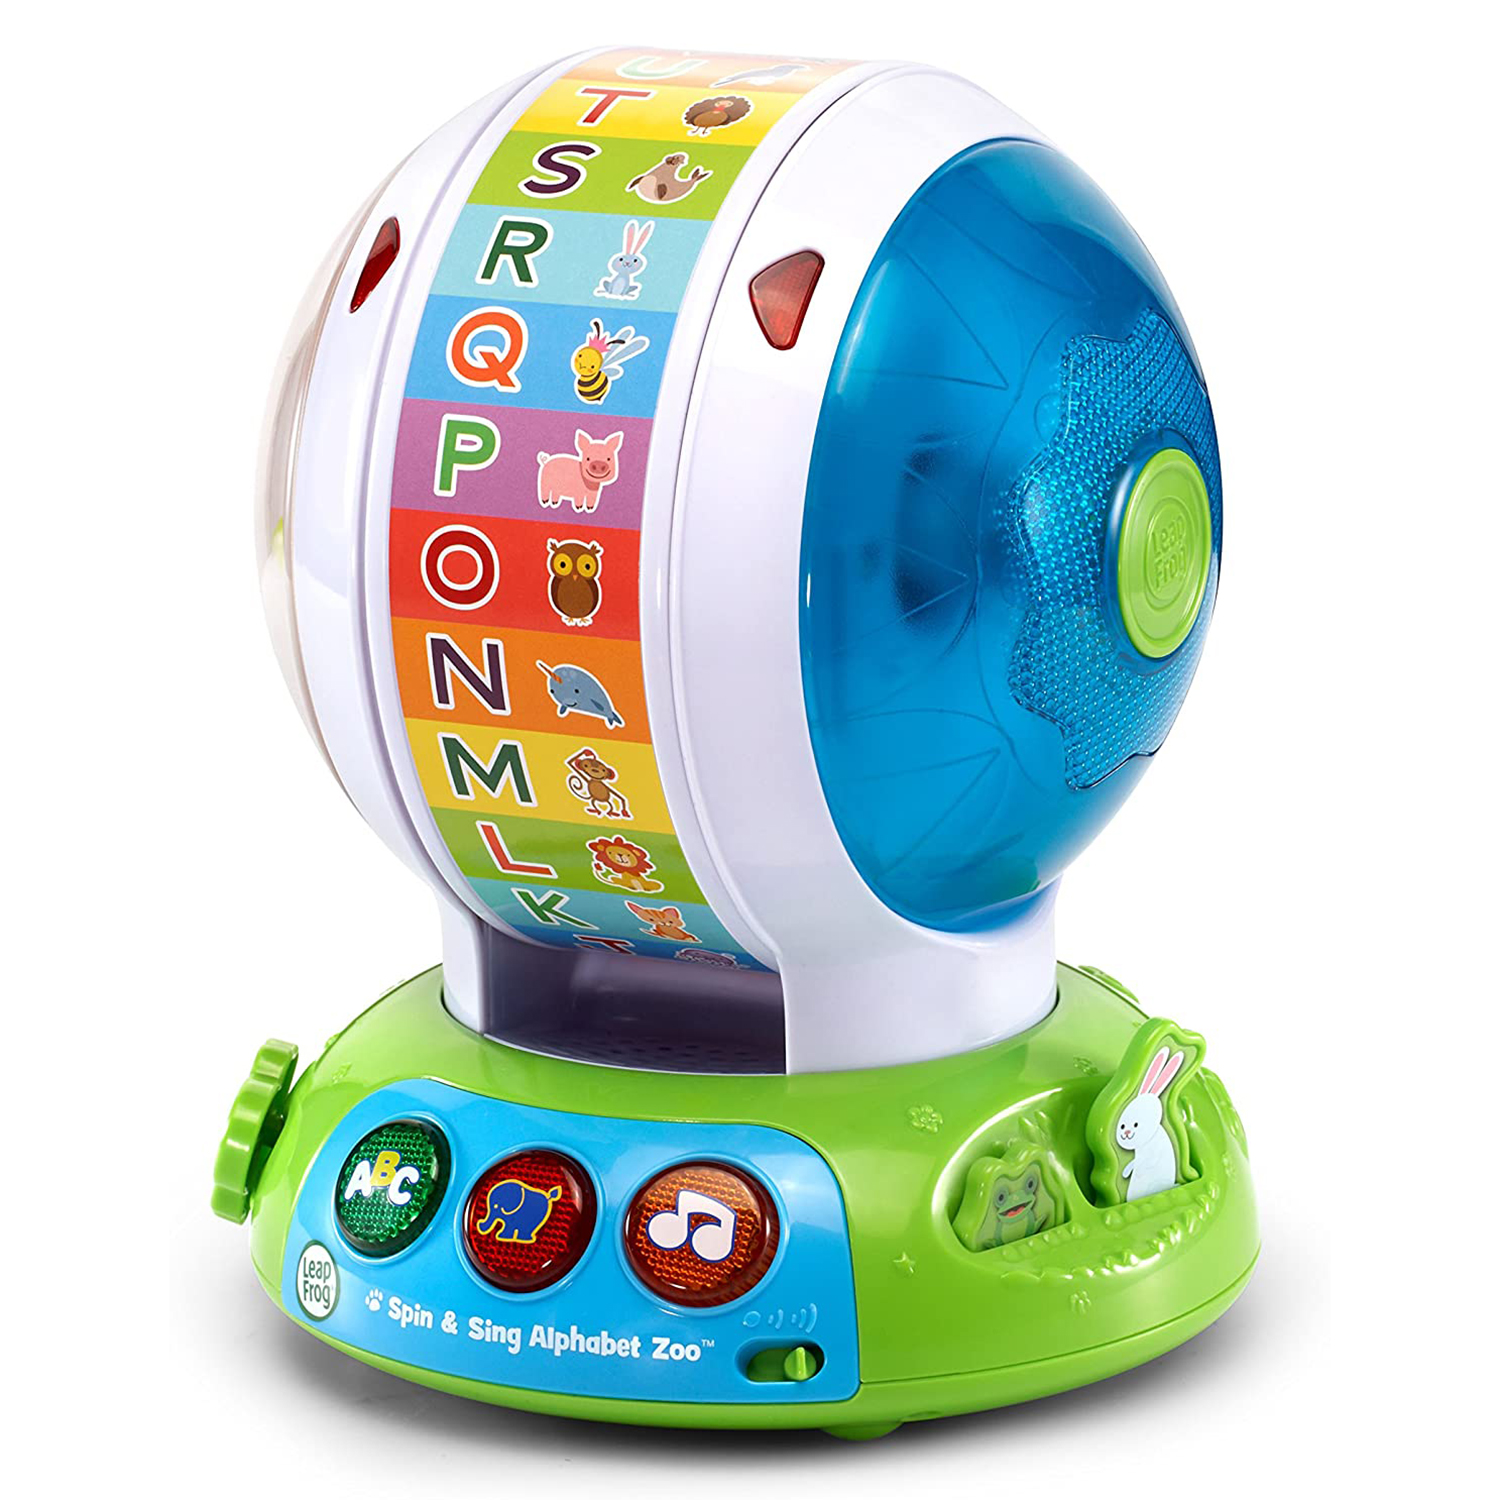 Best Educational BabyToy: LeapFrog Spin and Sing Alphabet Zoo